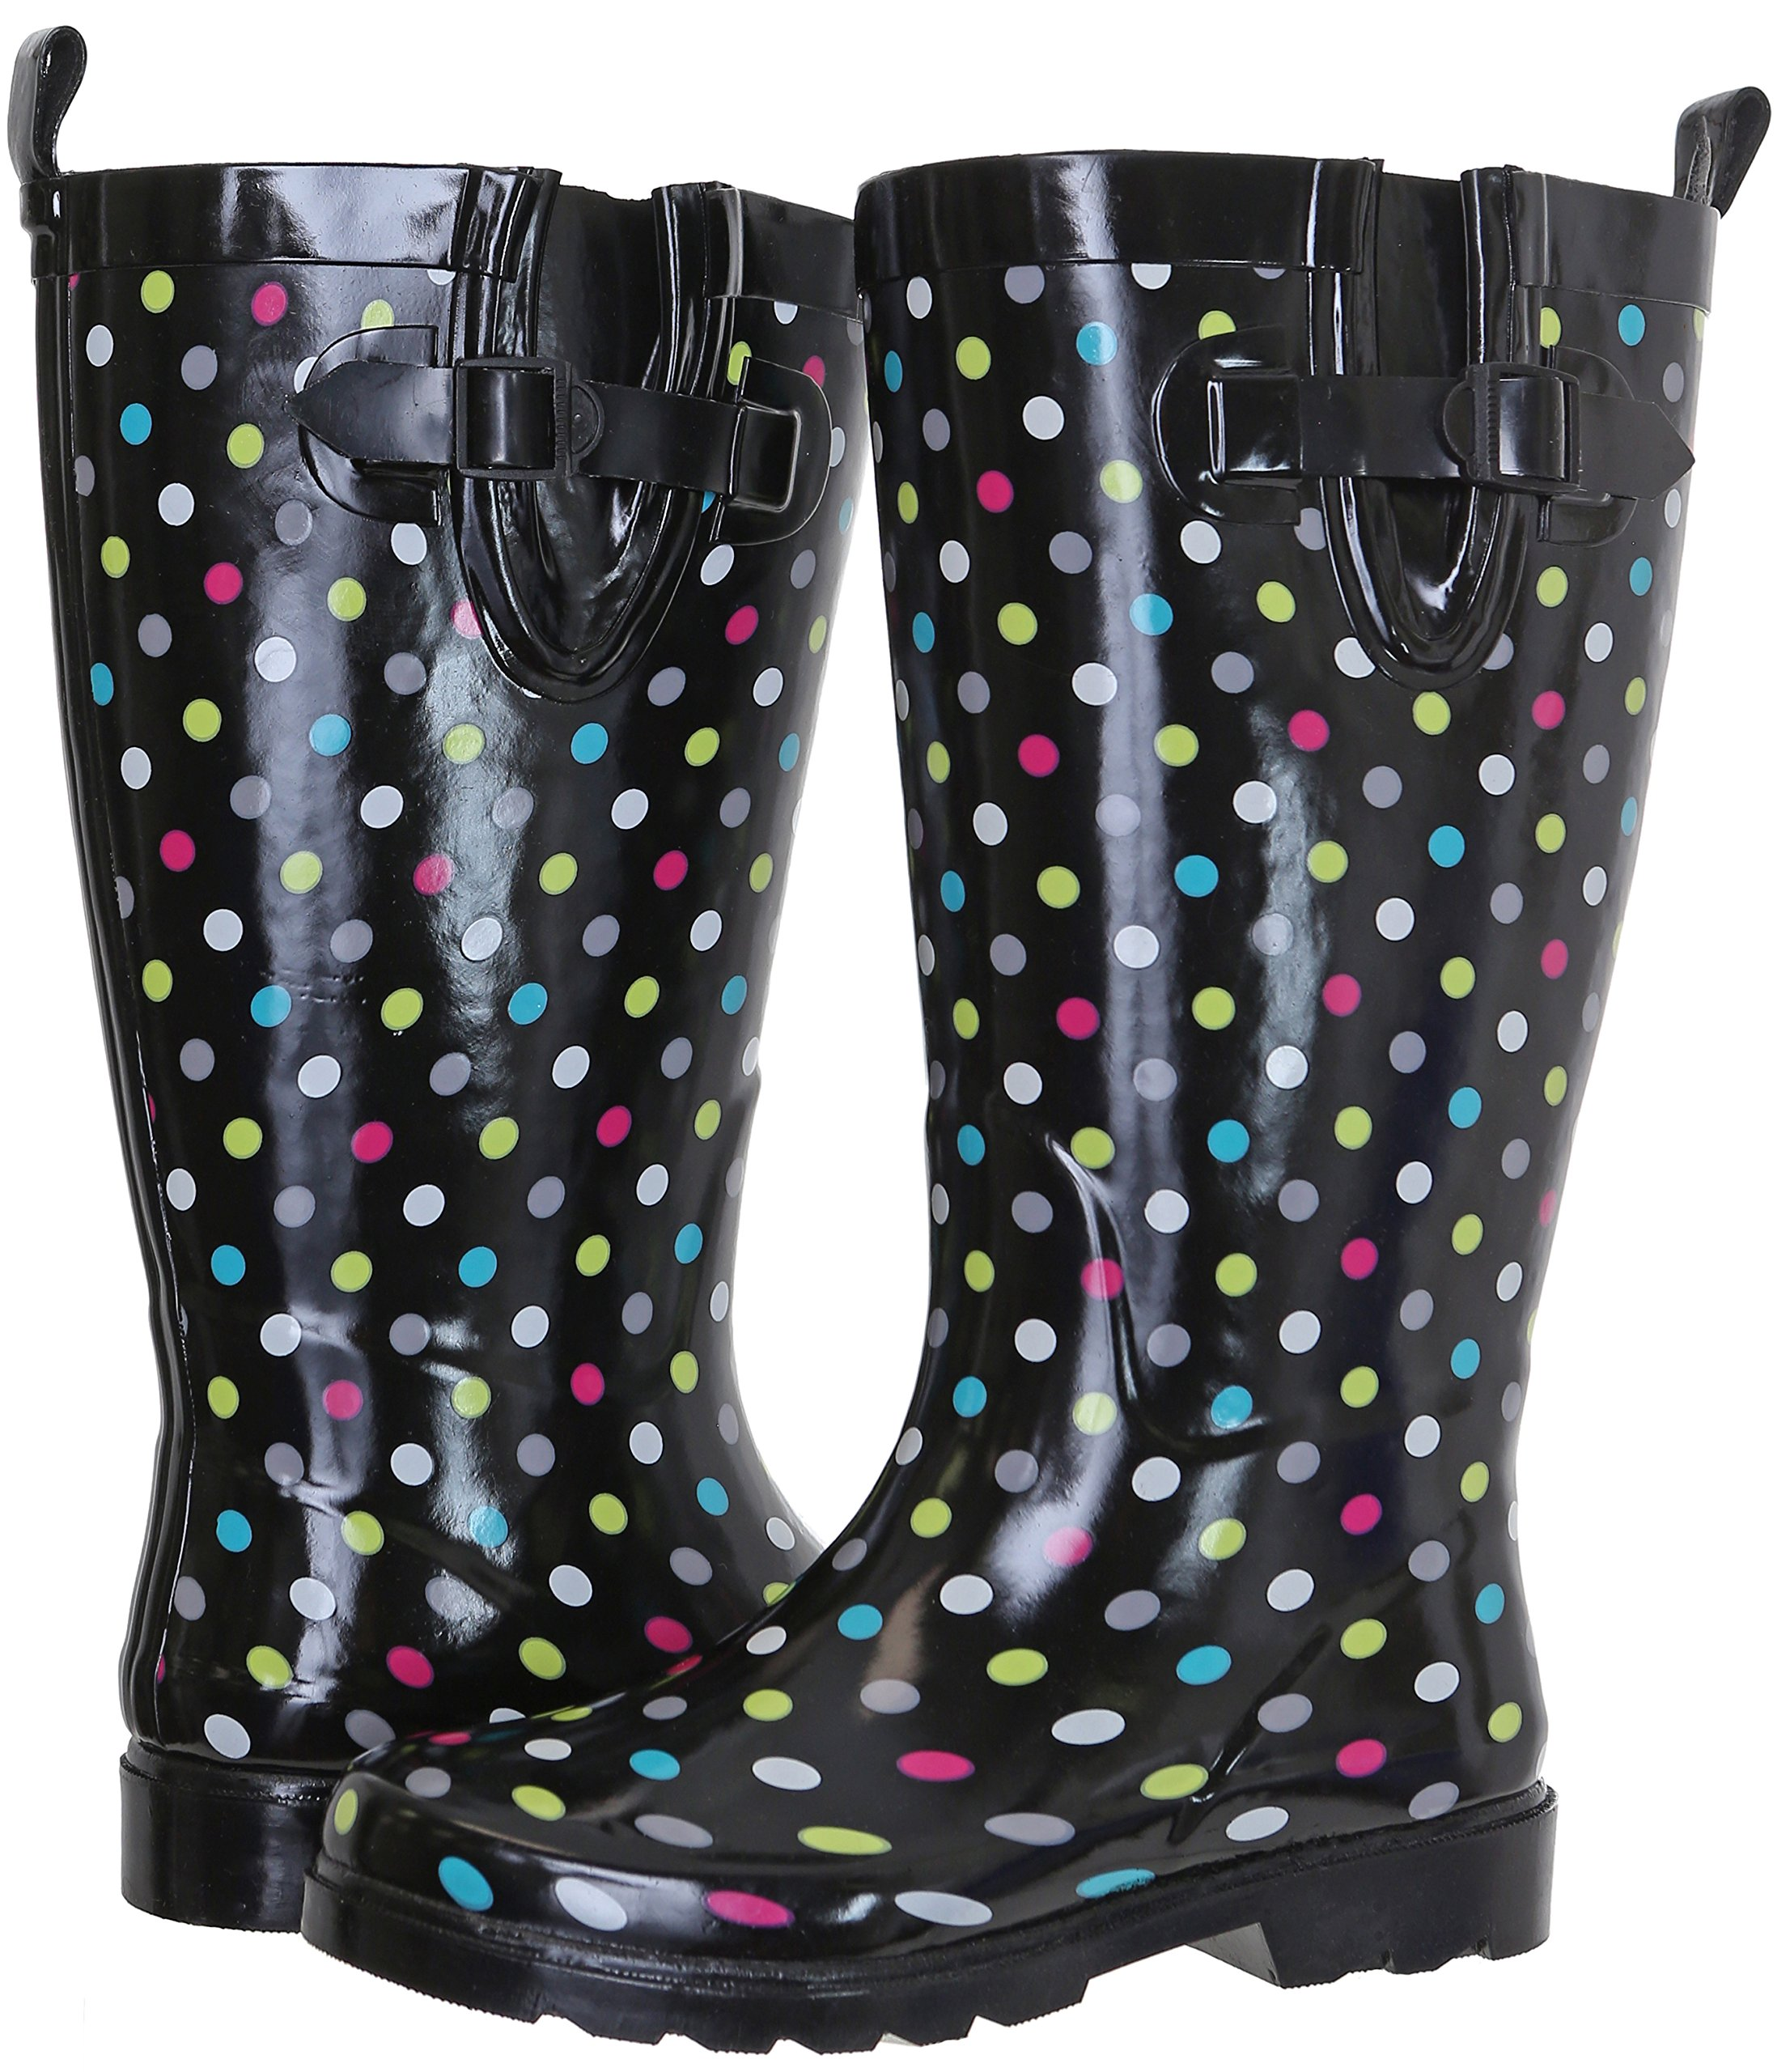 Capelli New York Ladies Shiny with Dots Tall Rubber Rain Boot Multi Rainbow Combo 11